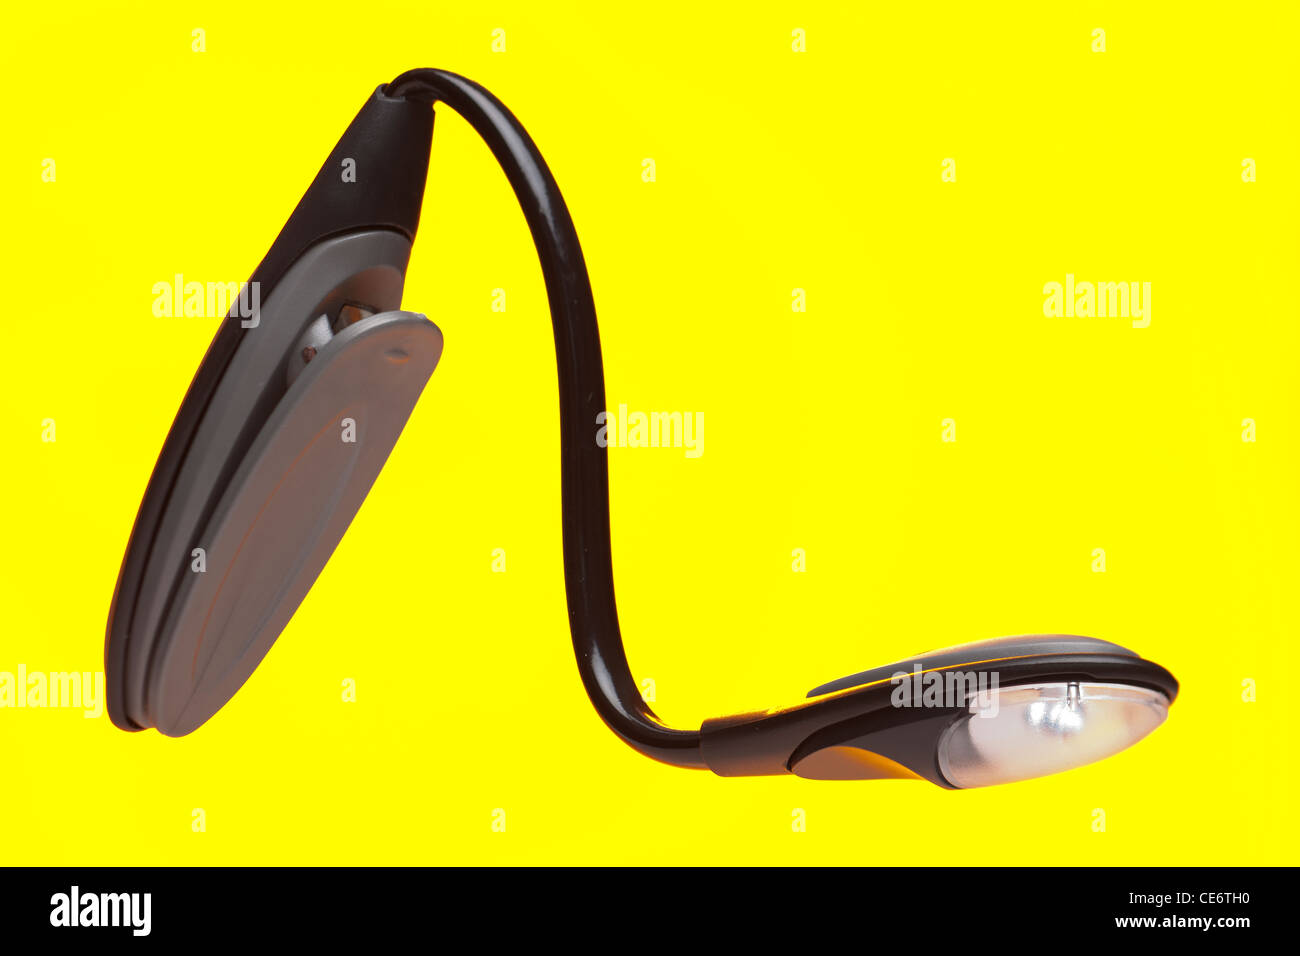 Small clip on handy torch - Stock Image